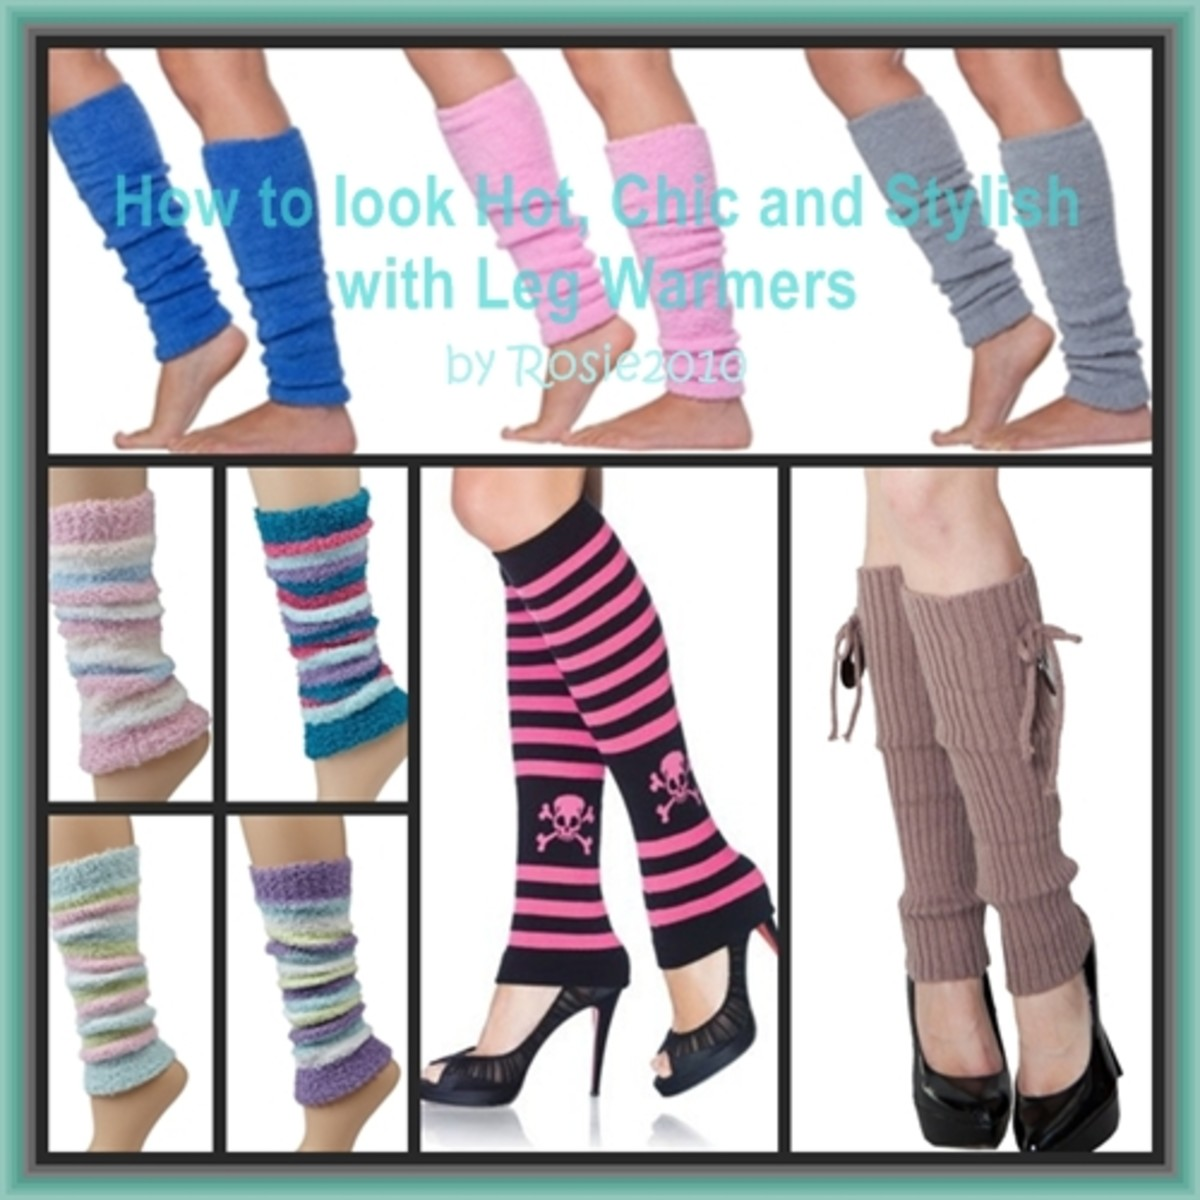 - How to Look Hot, Chic and Stylish with Leg Warmers, by Rosie2010 -